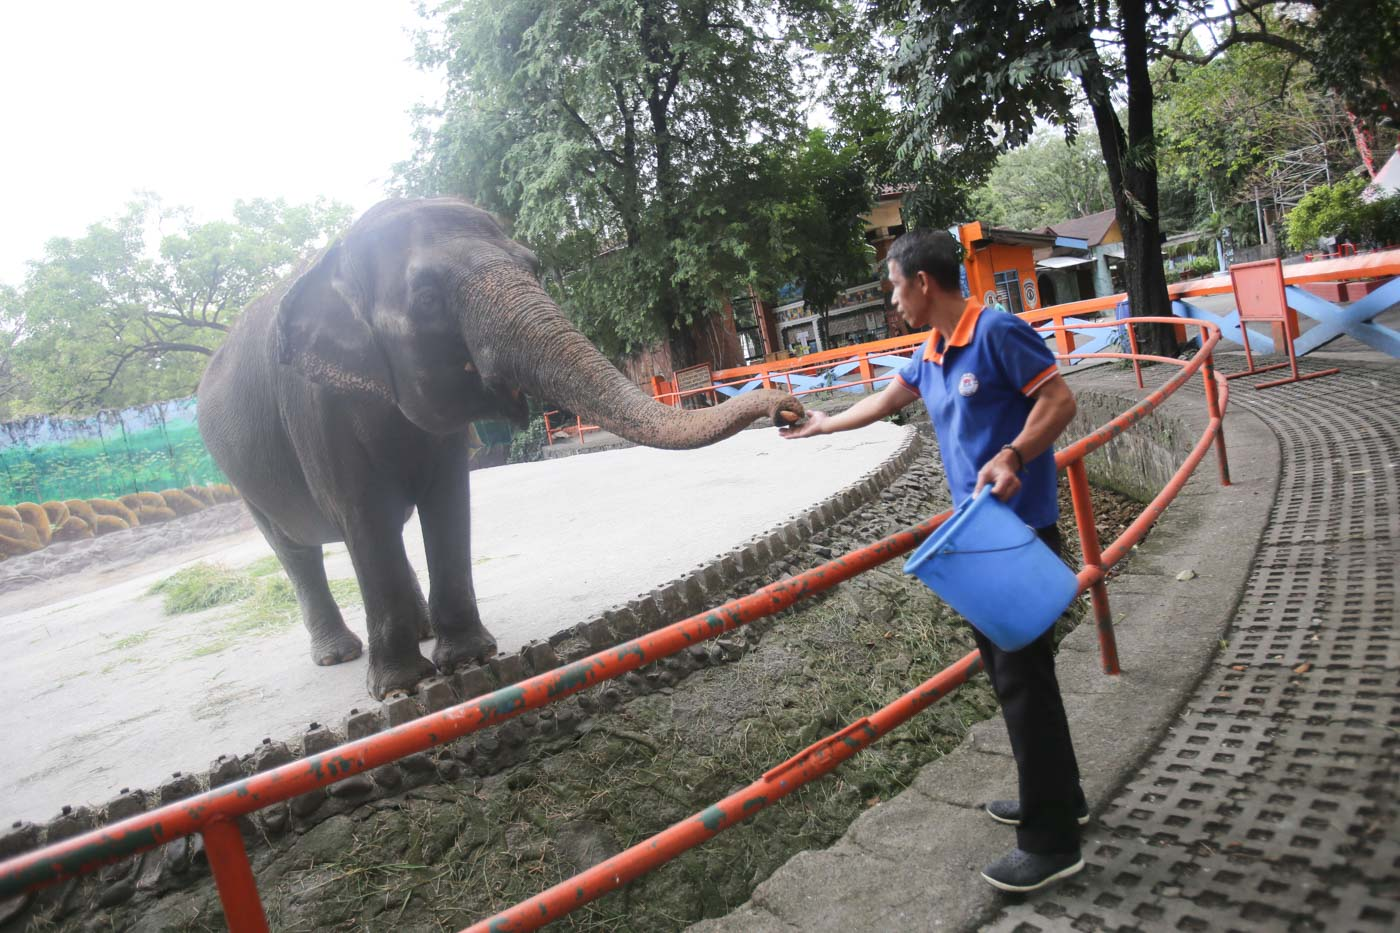 FAMOUS RESIDENT. Mali, a 43-year-old Asian elephant which started living in Manila Zoo at age 3, is fed by a zoo employee without the usual gawkers on January 23, 2019. Photo by Inoue Jaena/Rappler